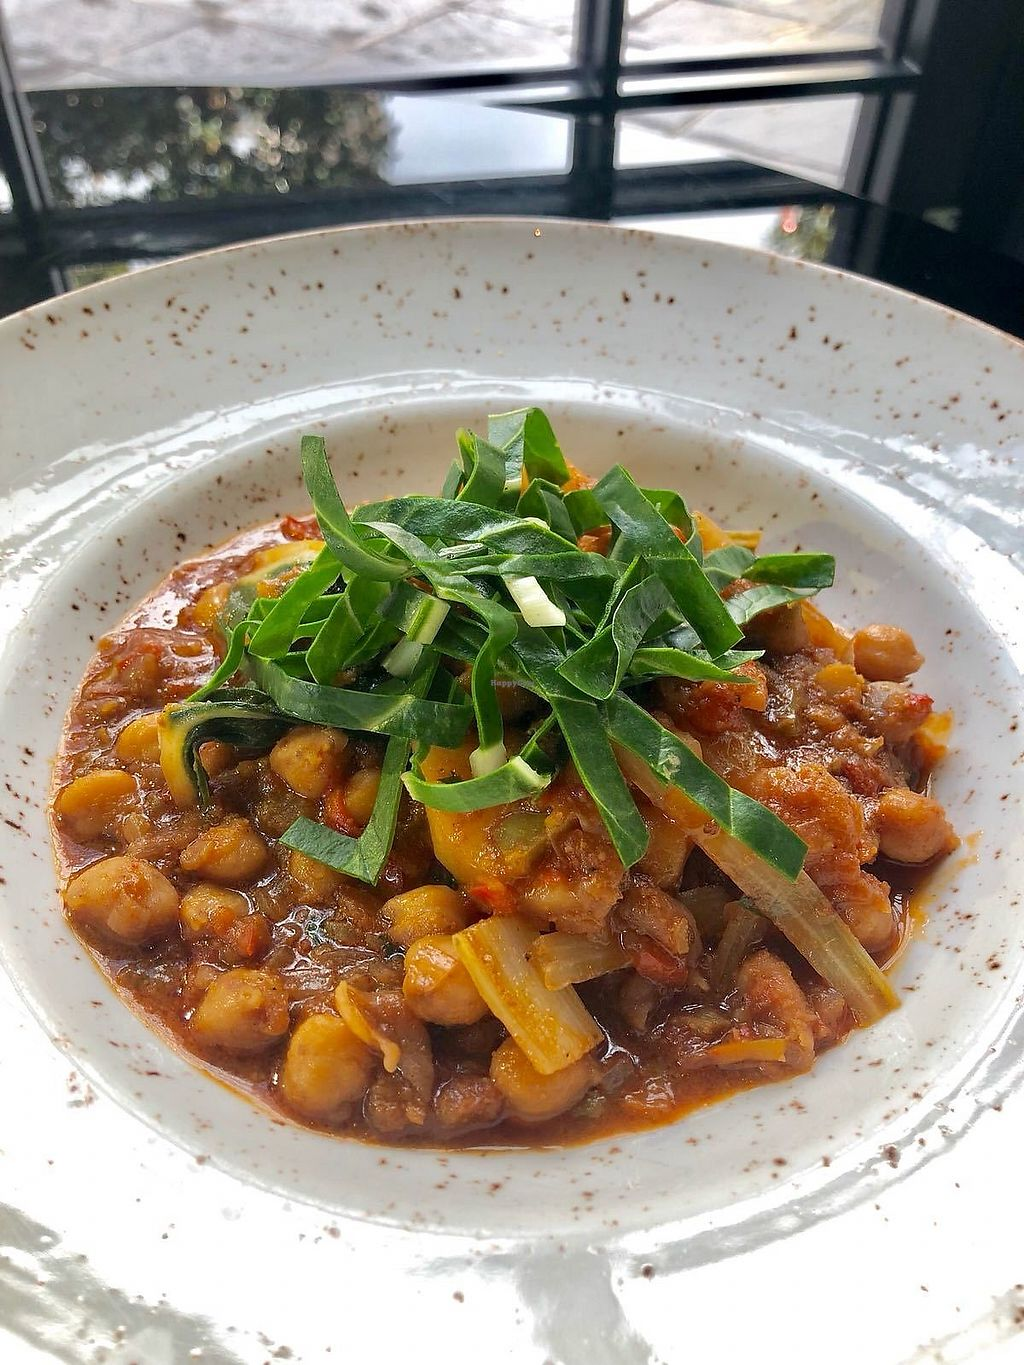 """Photo of Wild Food  by <a href=""""/members/profile/LorenaSierra"""">LorenaSierra</a> <br/>Stewed Chickpeas <br/> April 7, 2018  - <a href='/contact/abuse/image/106140/382078'>Report</a>"""